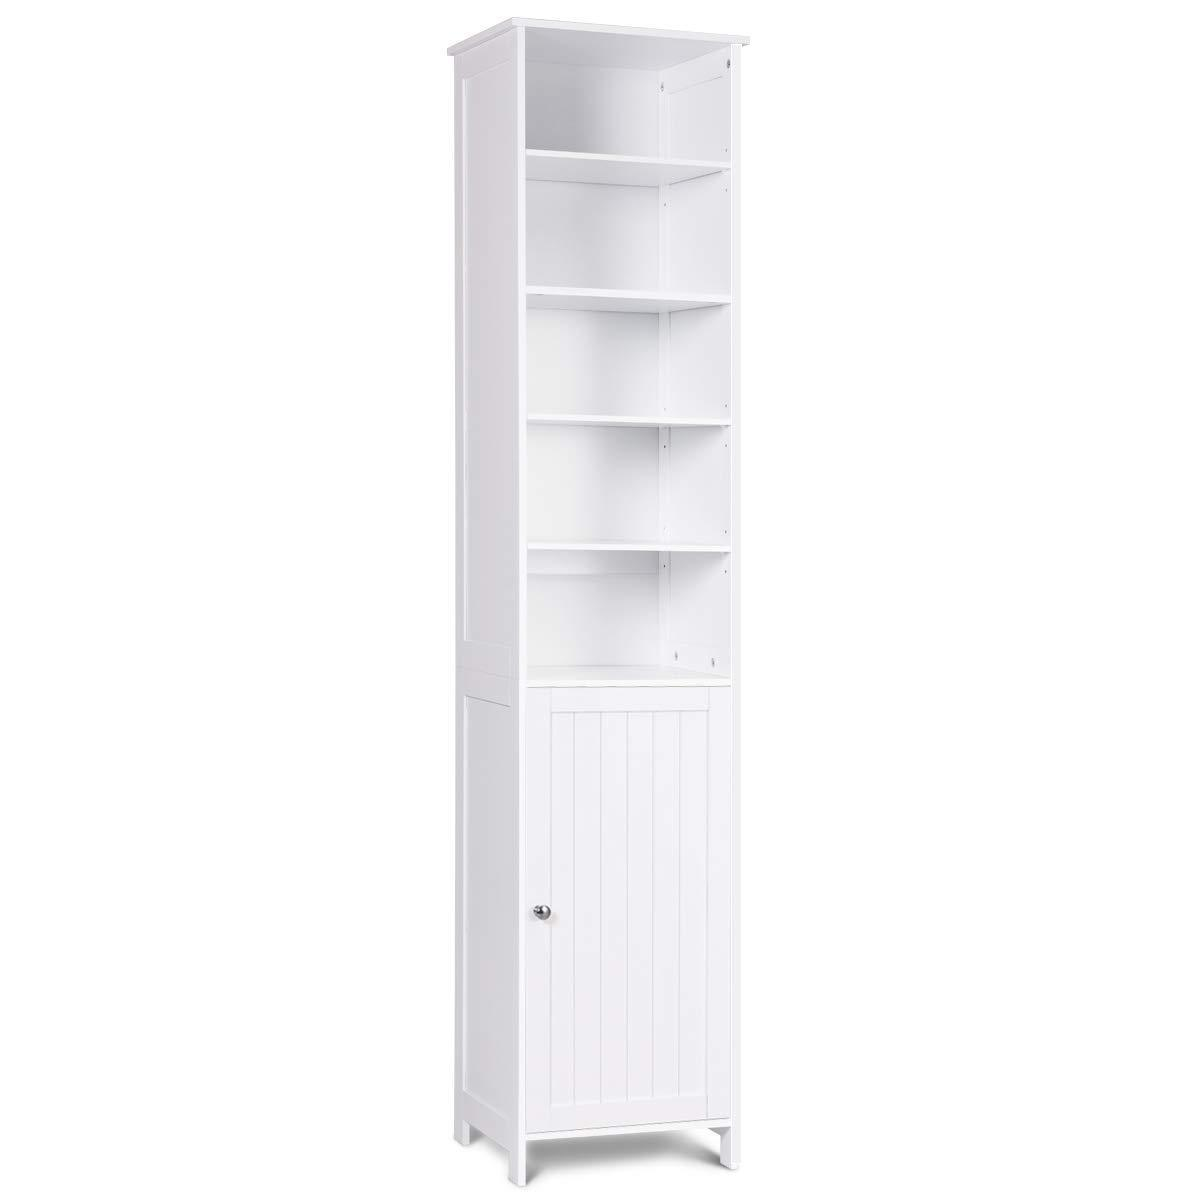 Heavy duty 72 tall cabinet waterjoy standing tall storage cabinet wooden white bathroom cupboard with door and 5 adjustable shelves elegant and space saving